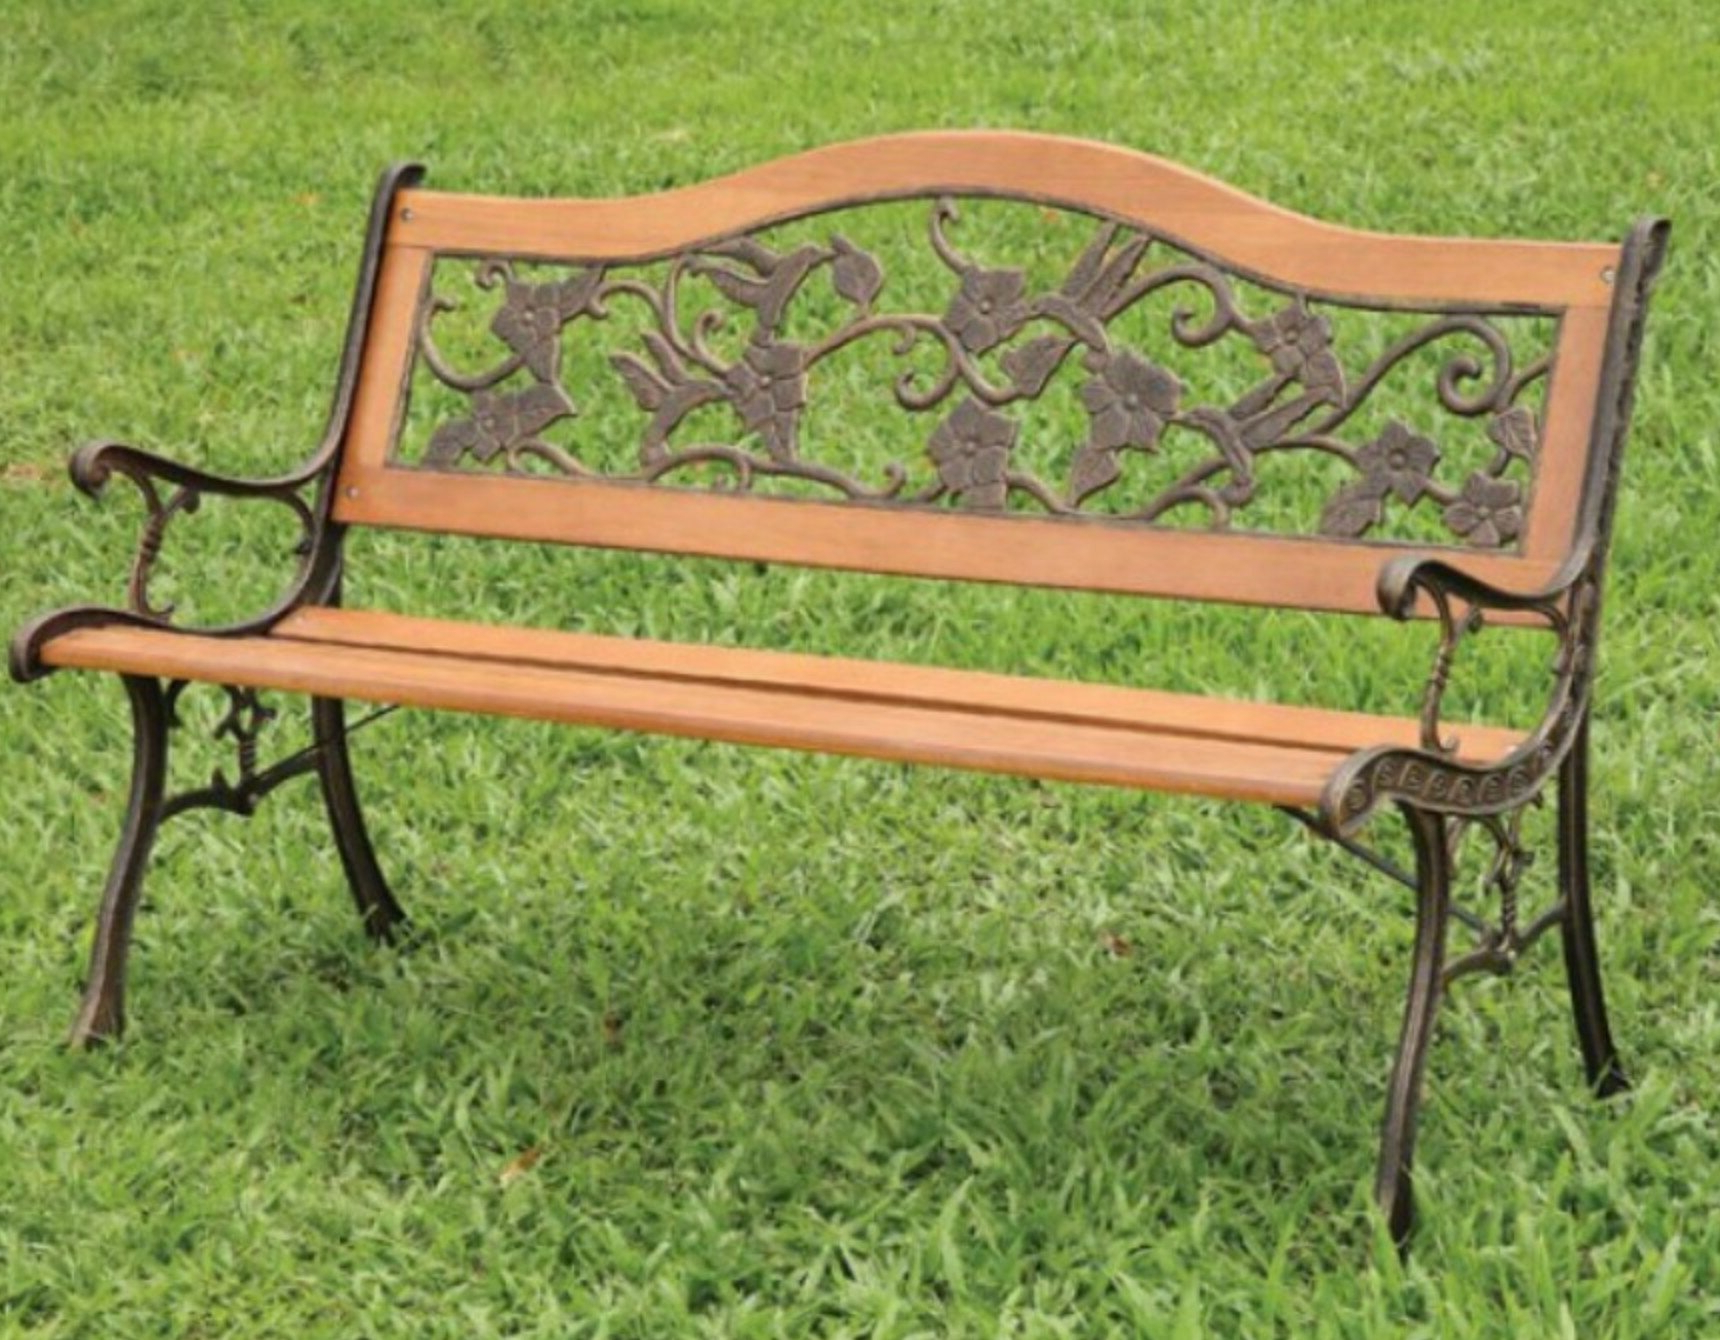 Alfon Wood Garden Benches Pertaining To Most Popular Carondelet Garden Bench (View 16 of 30)